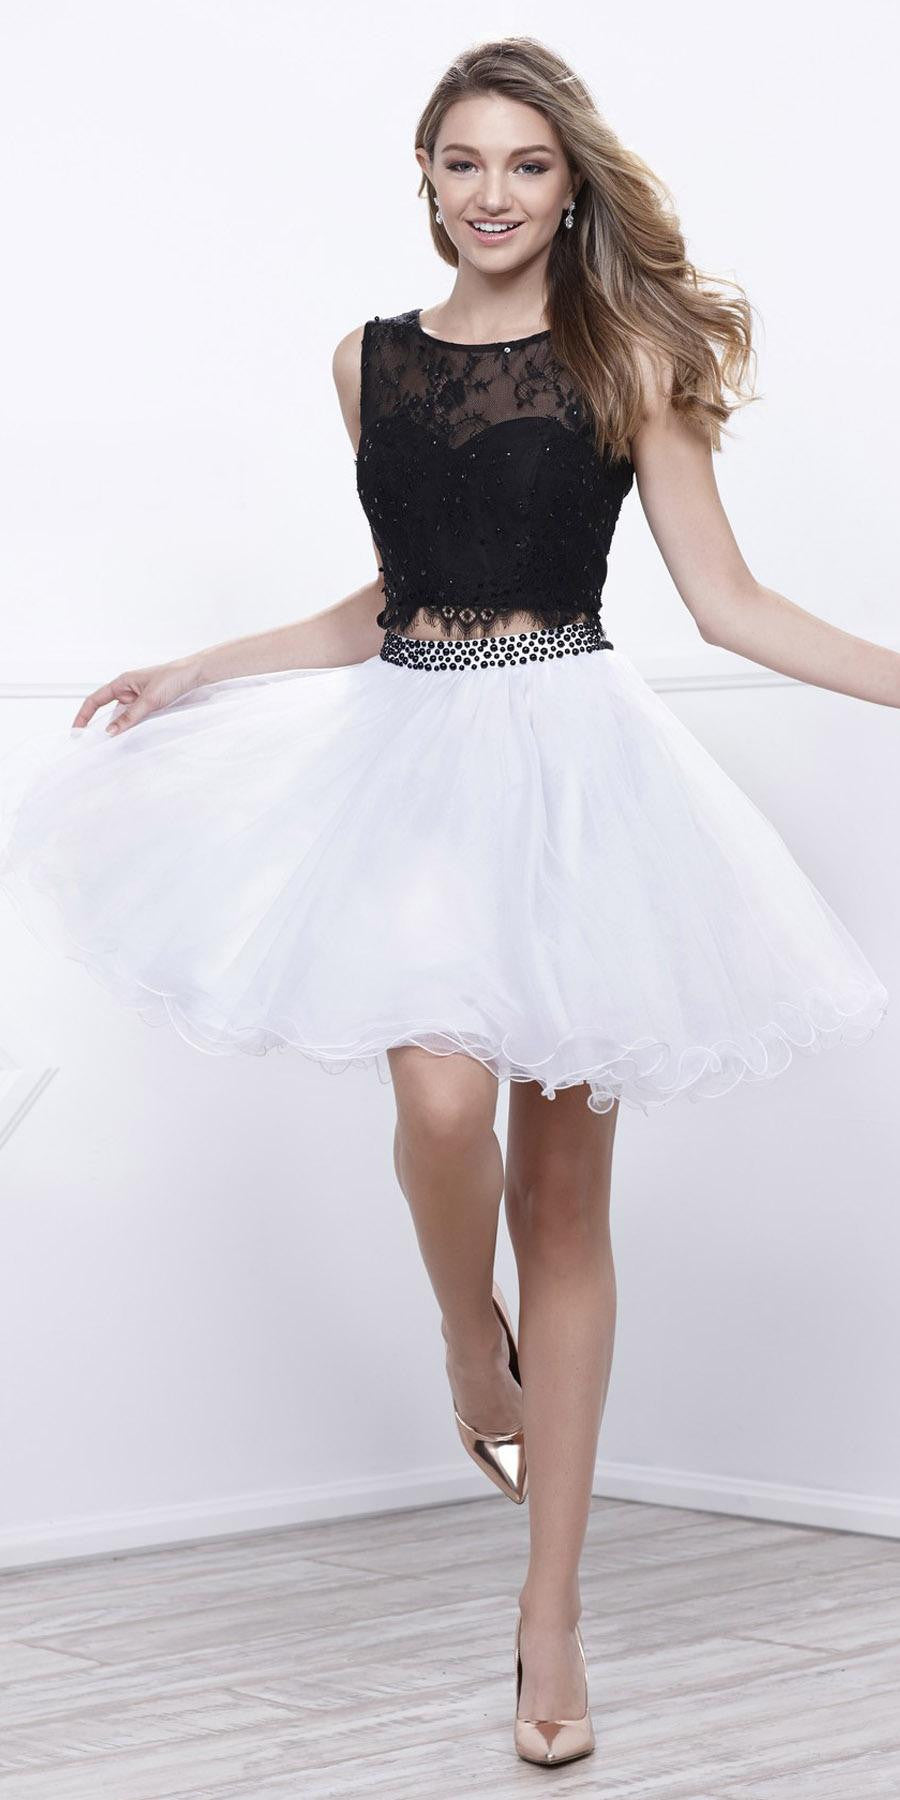 e4f8feb714b Black White Two-Piece Homecoming Dress Lace Crop Top Sleeveless. Tap to  expand